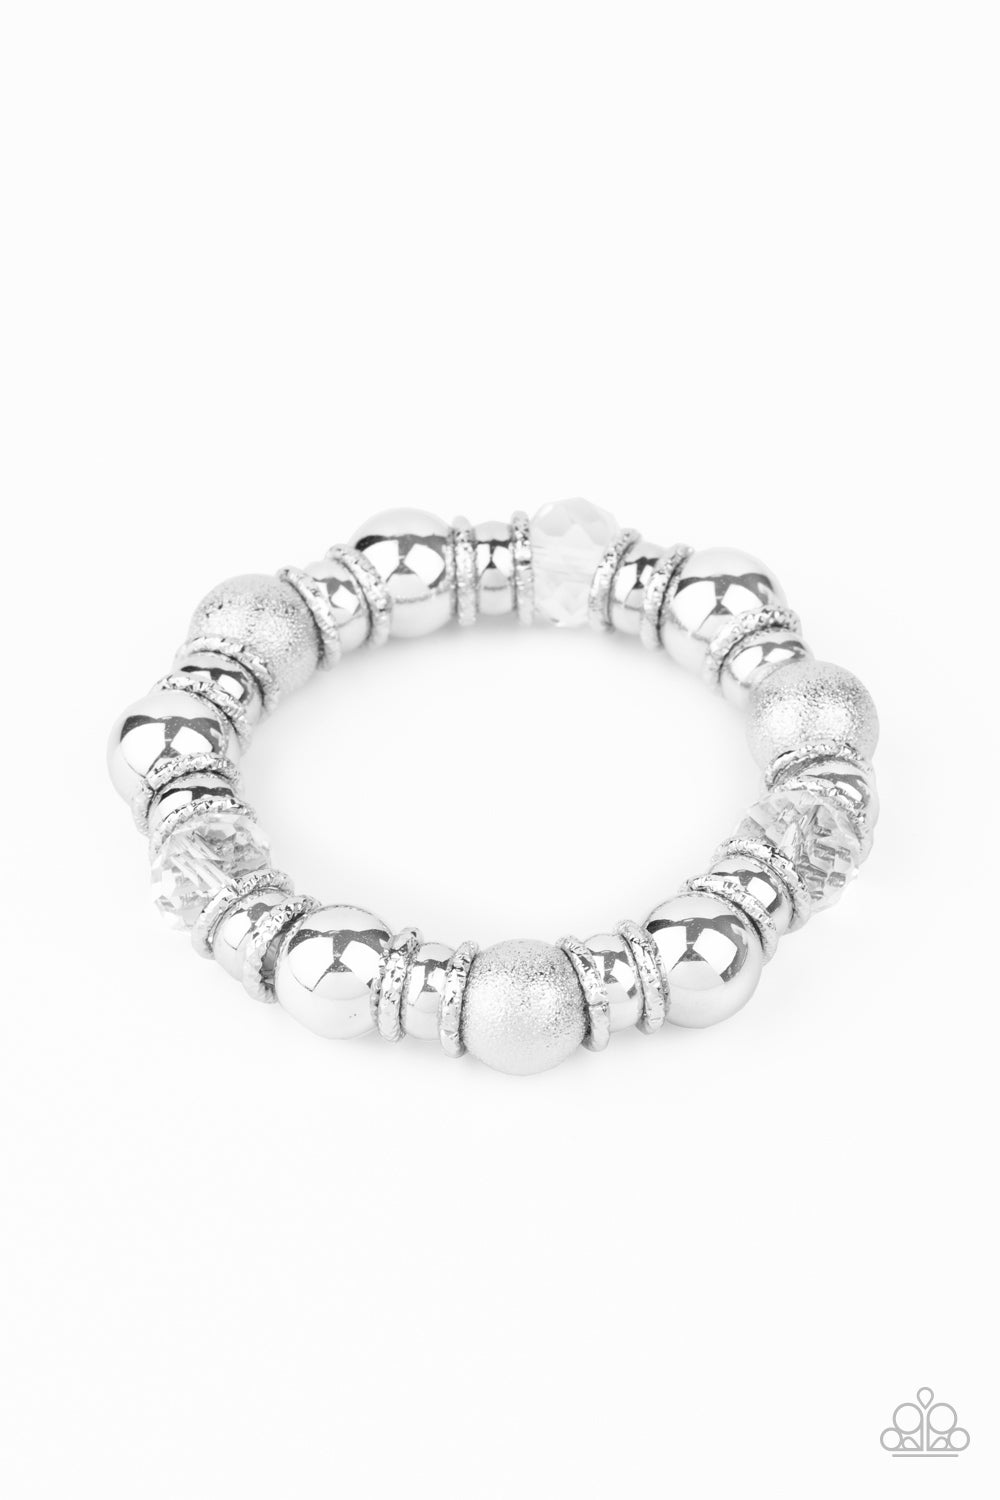 Take Your Best Shot Paparazzi Bracelet-White